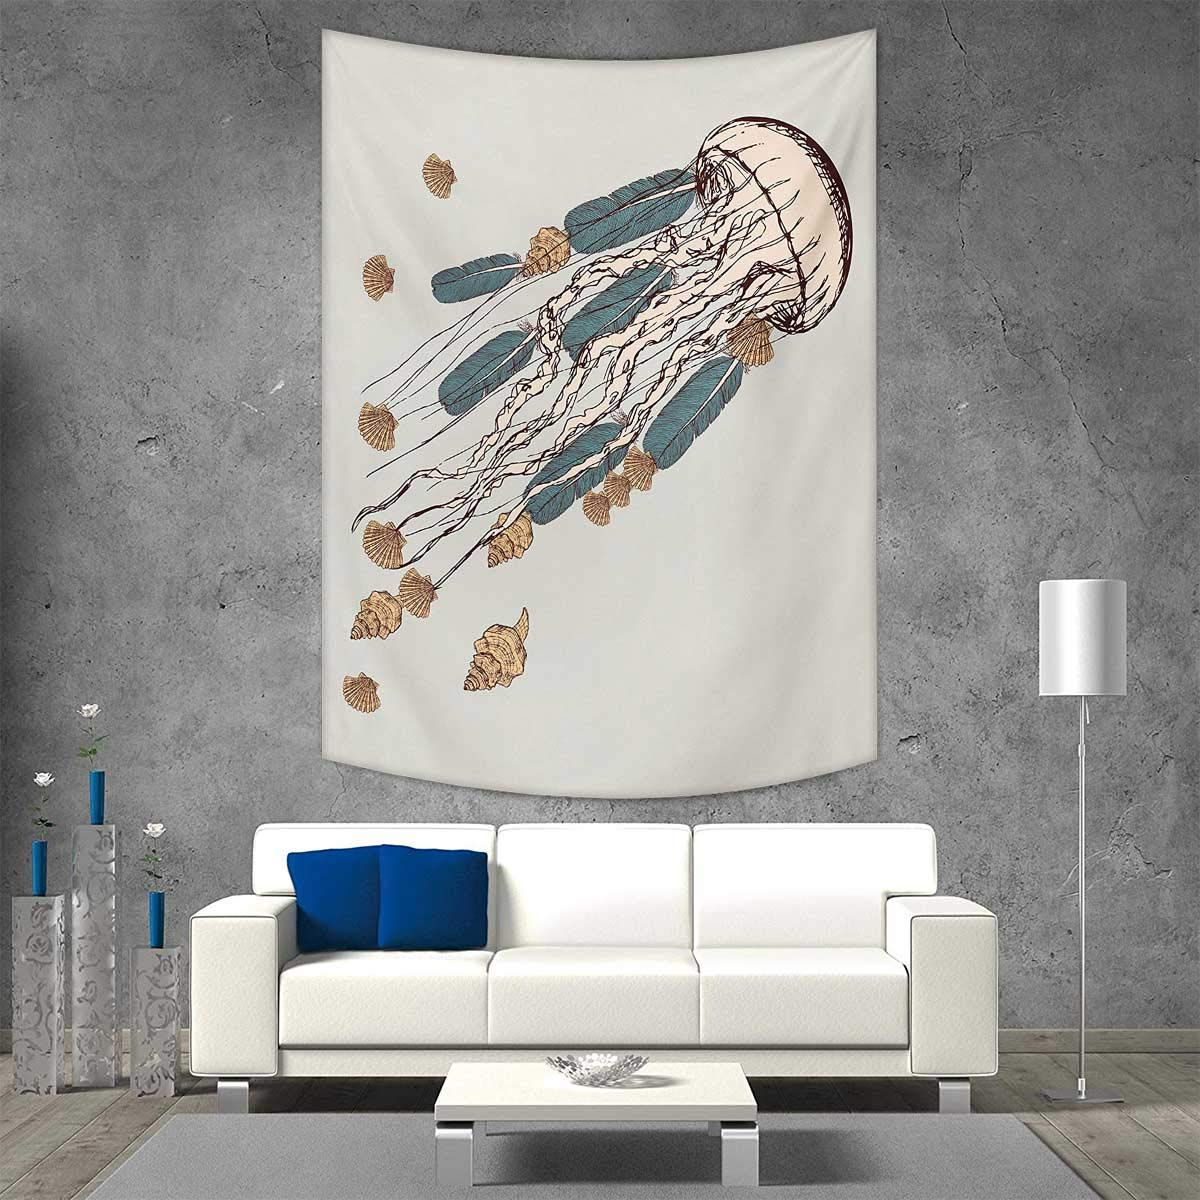 color18 54W x 72L inchVORMOR Jellyfish Wall Hanging Tapestries bluee Spotted Jelly Fish Aquarium Life Marine Animals Ocean Predator in The Deep Water Large tablecloths 40W x 60L INCH bluee